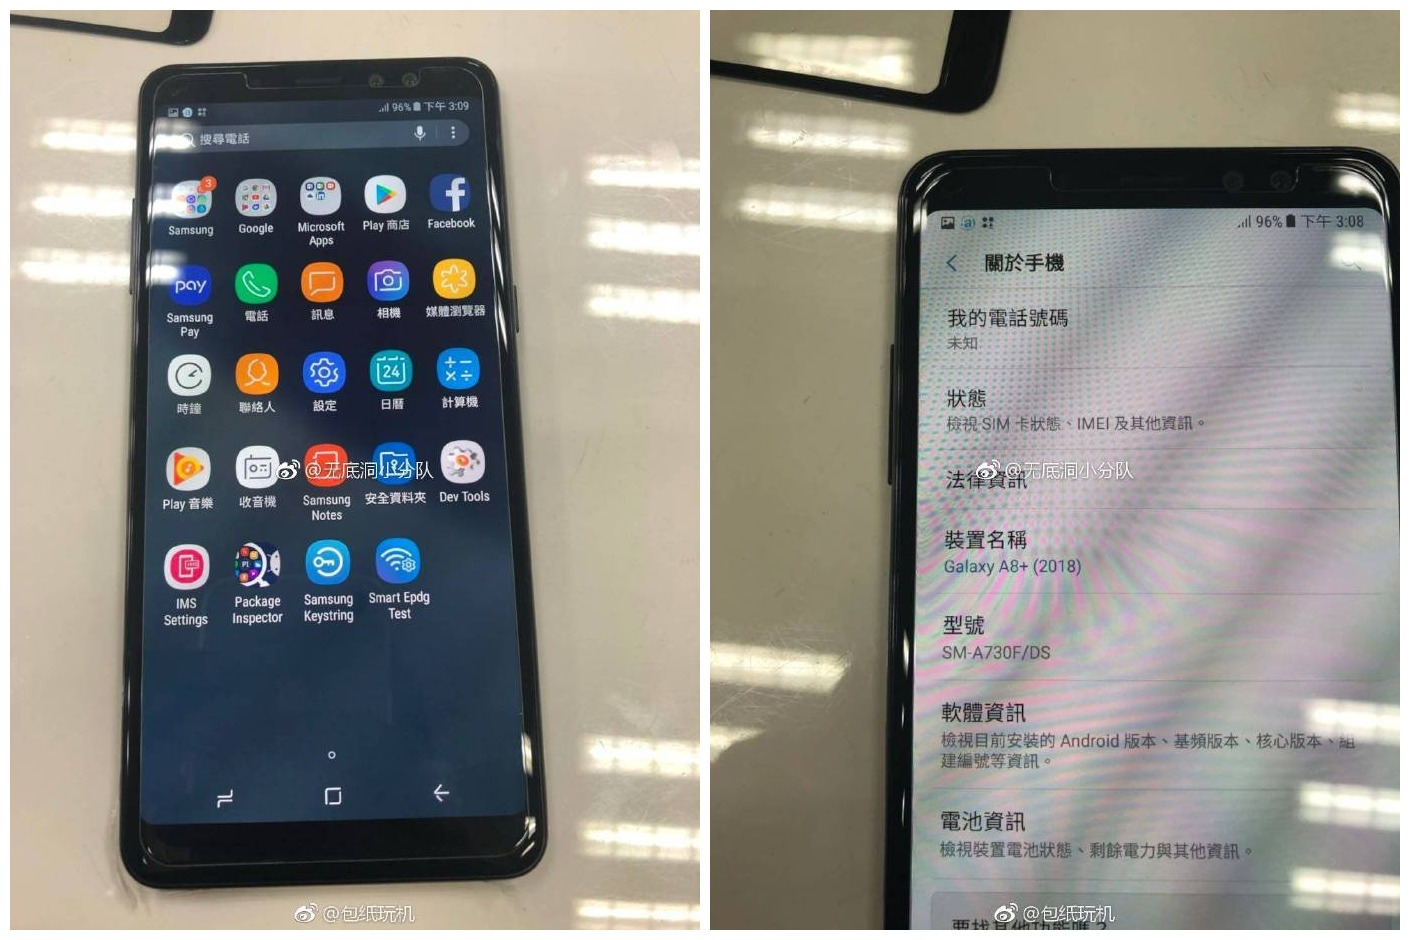 samsung_galaxy_a8plus_leaked_images